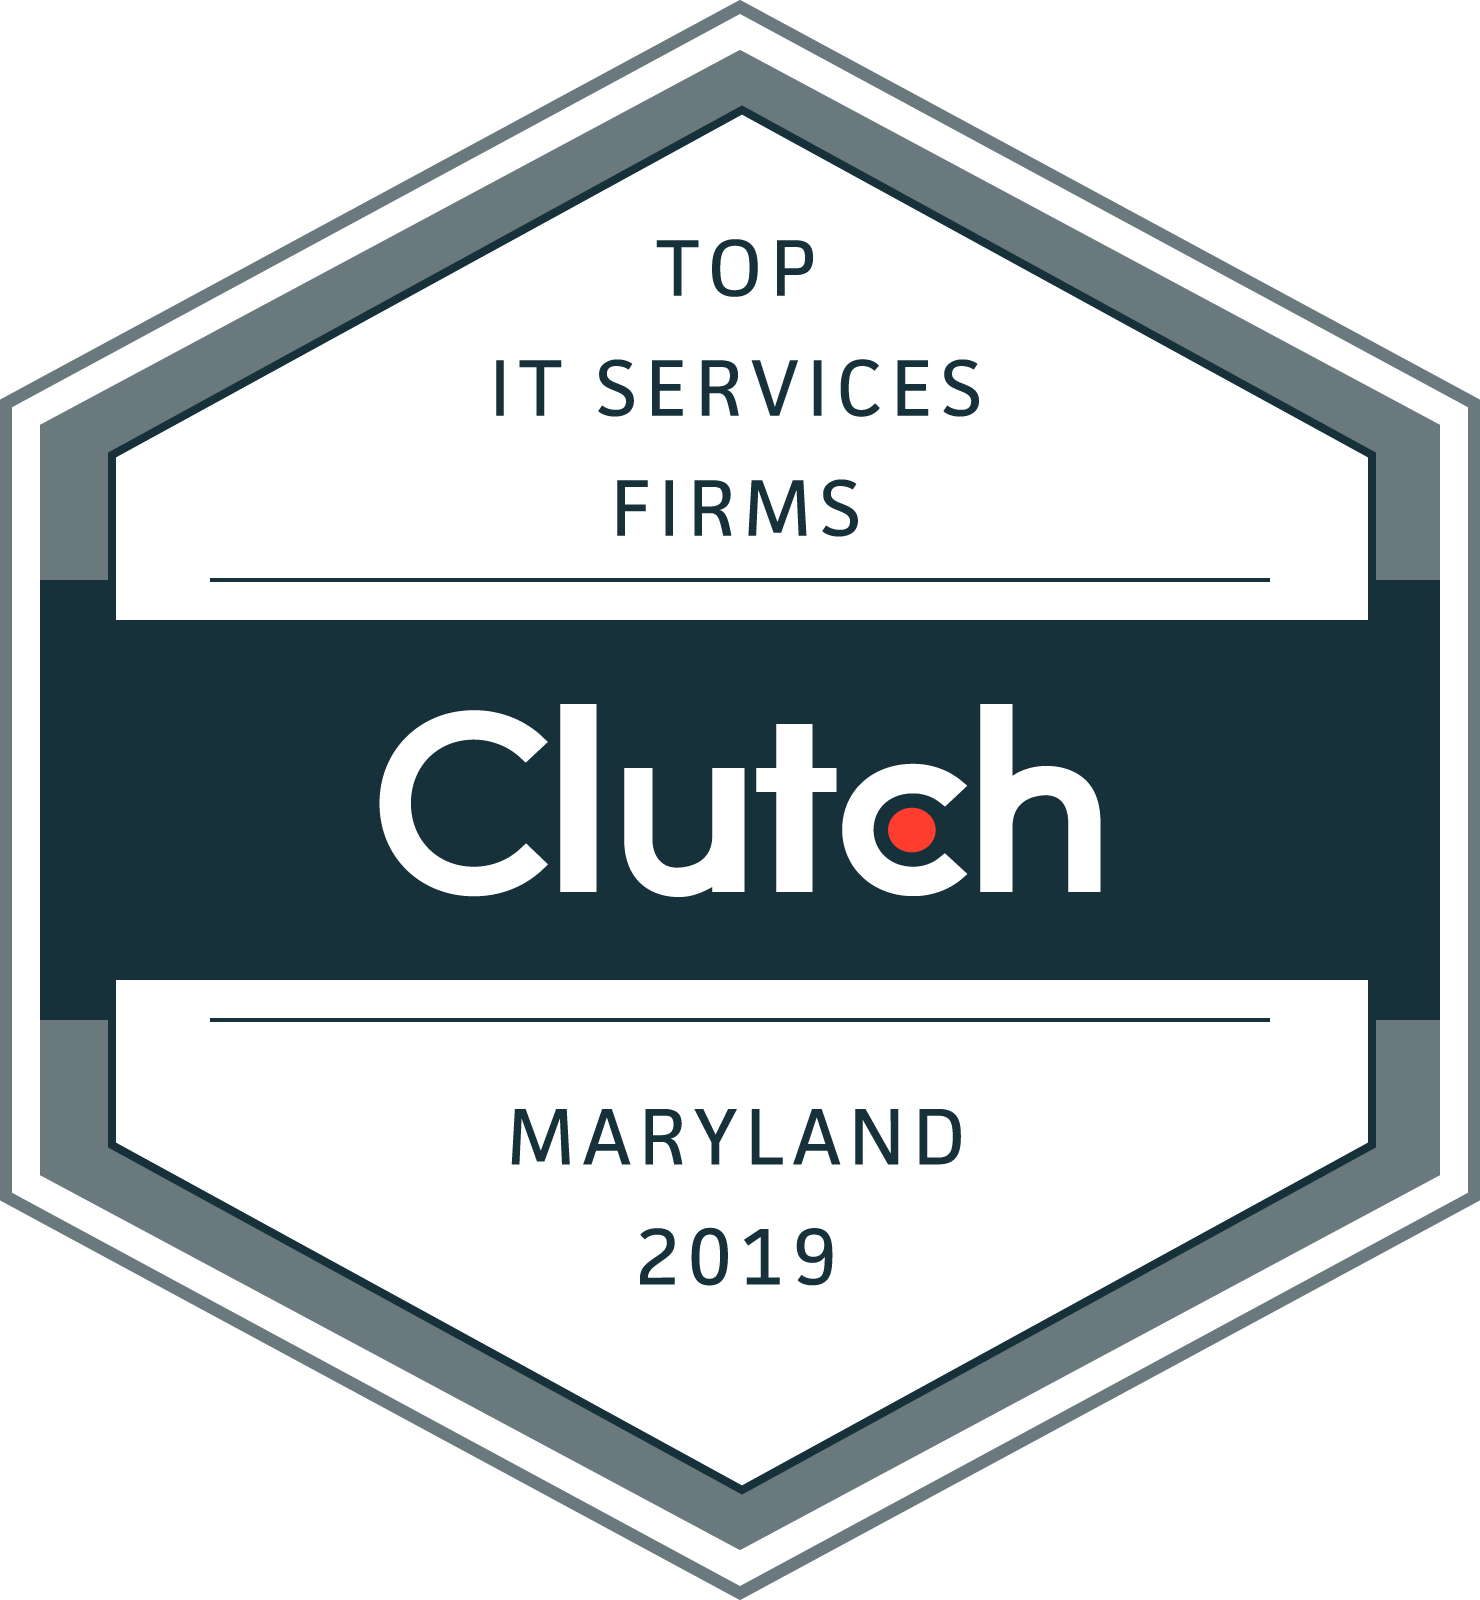 IT_Services_Maryland_2019.png